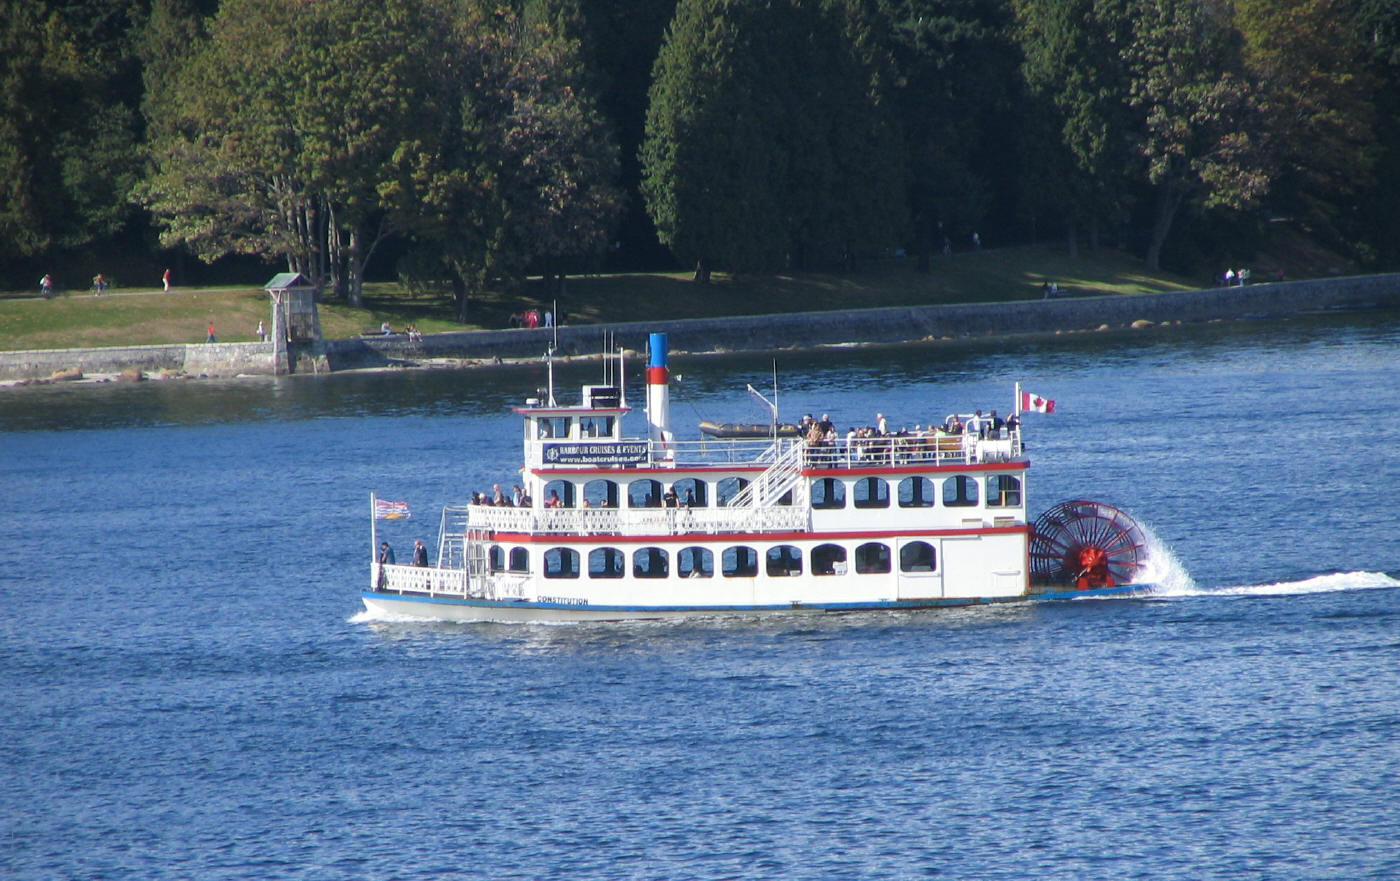 http://dic.academic.ru/pictures/wiki/files/80/Paddleboat_Vancouver_Canada.JPG